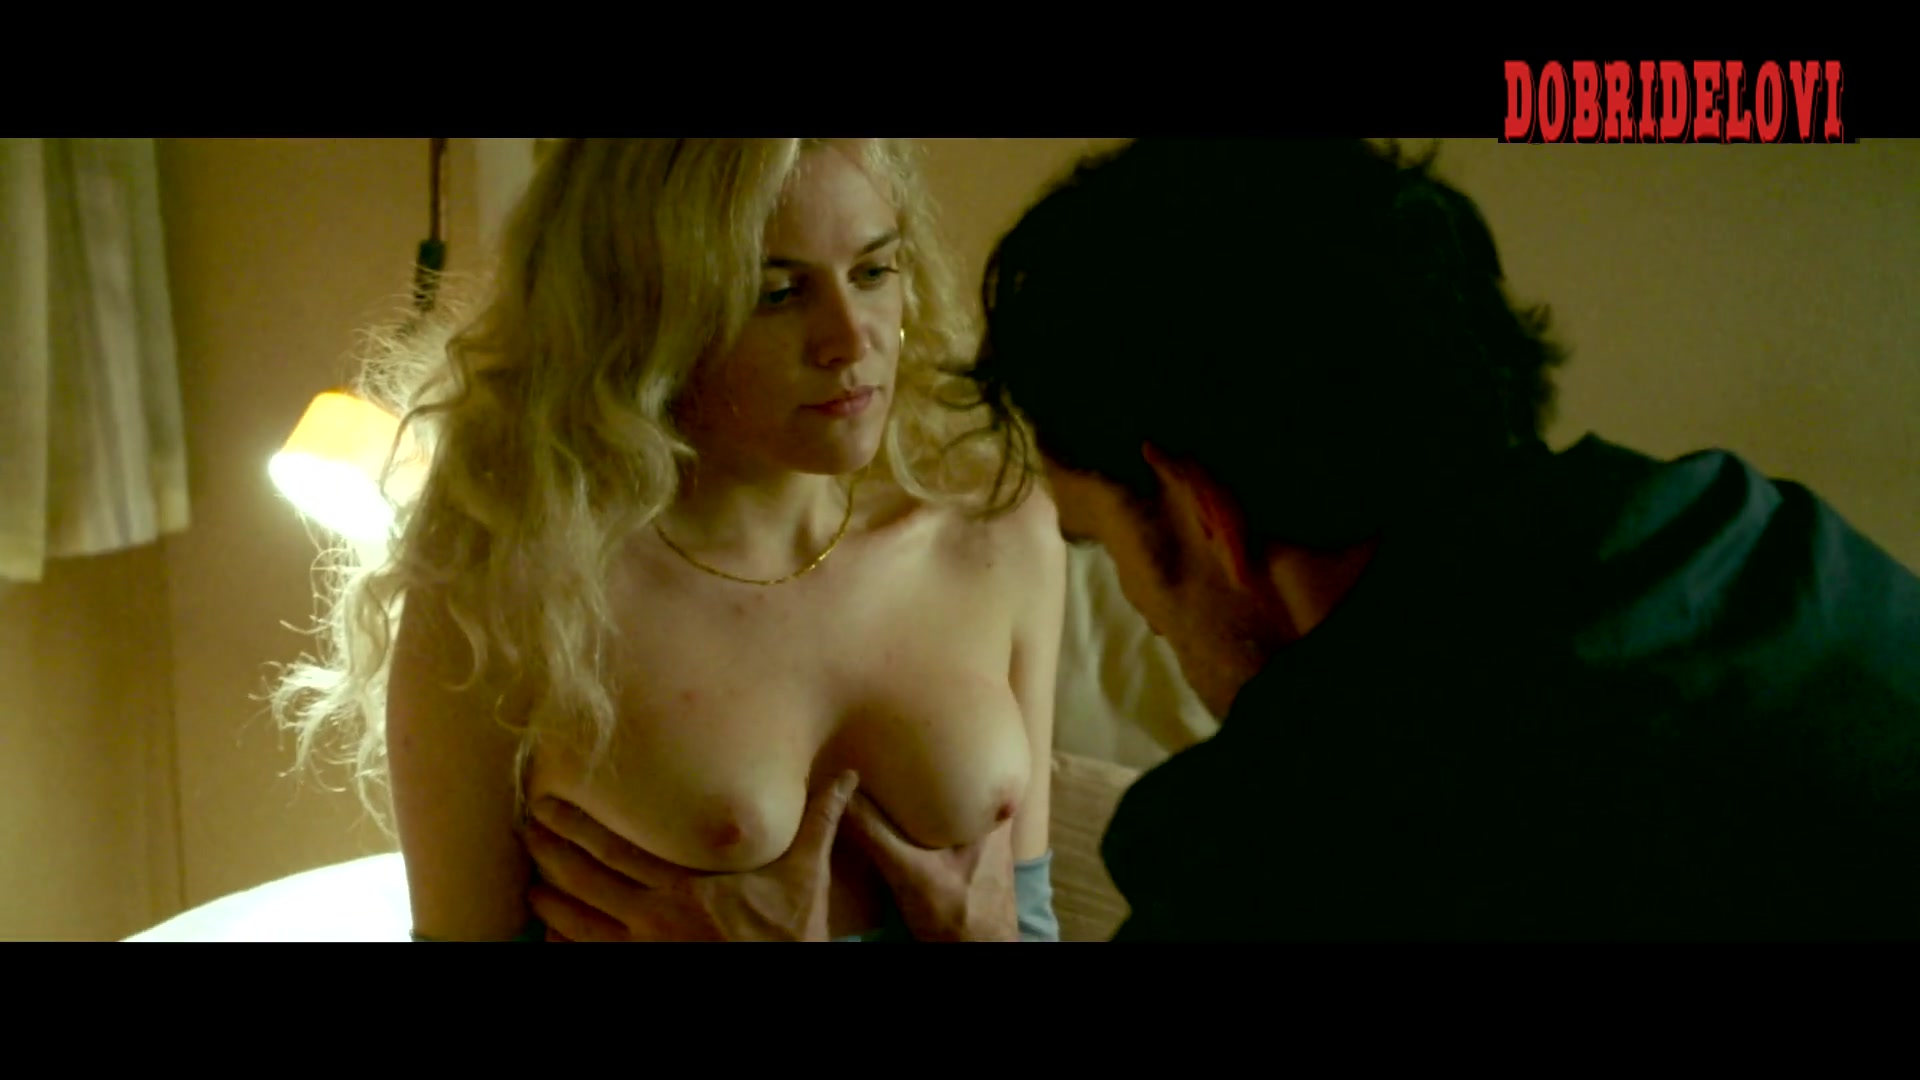 Riley Keough drawing on breasts scene from The House That Jack Built